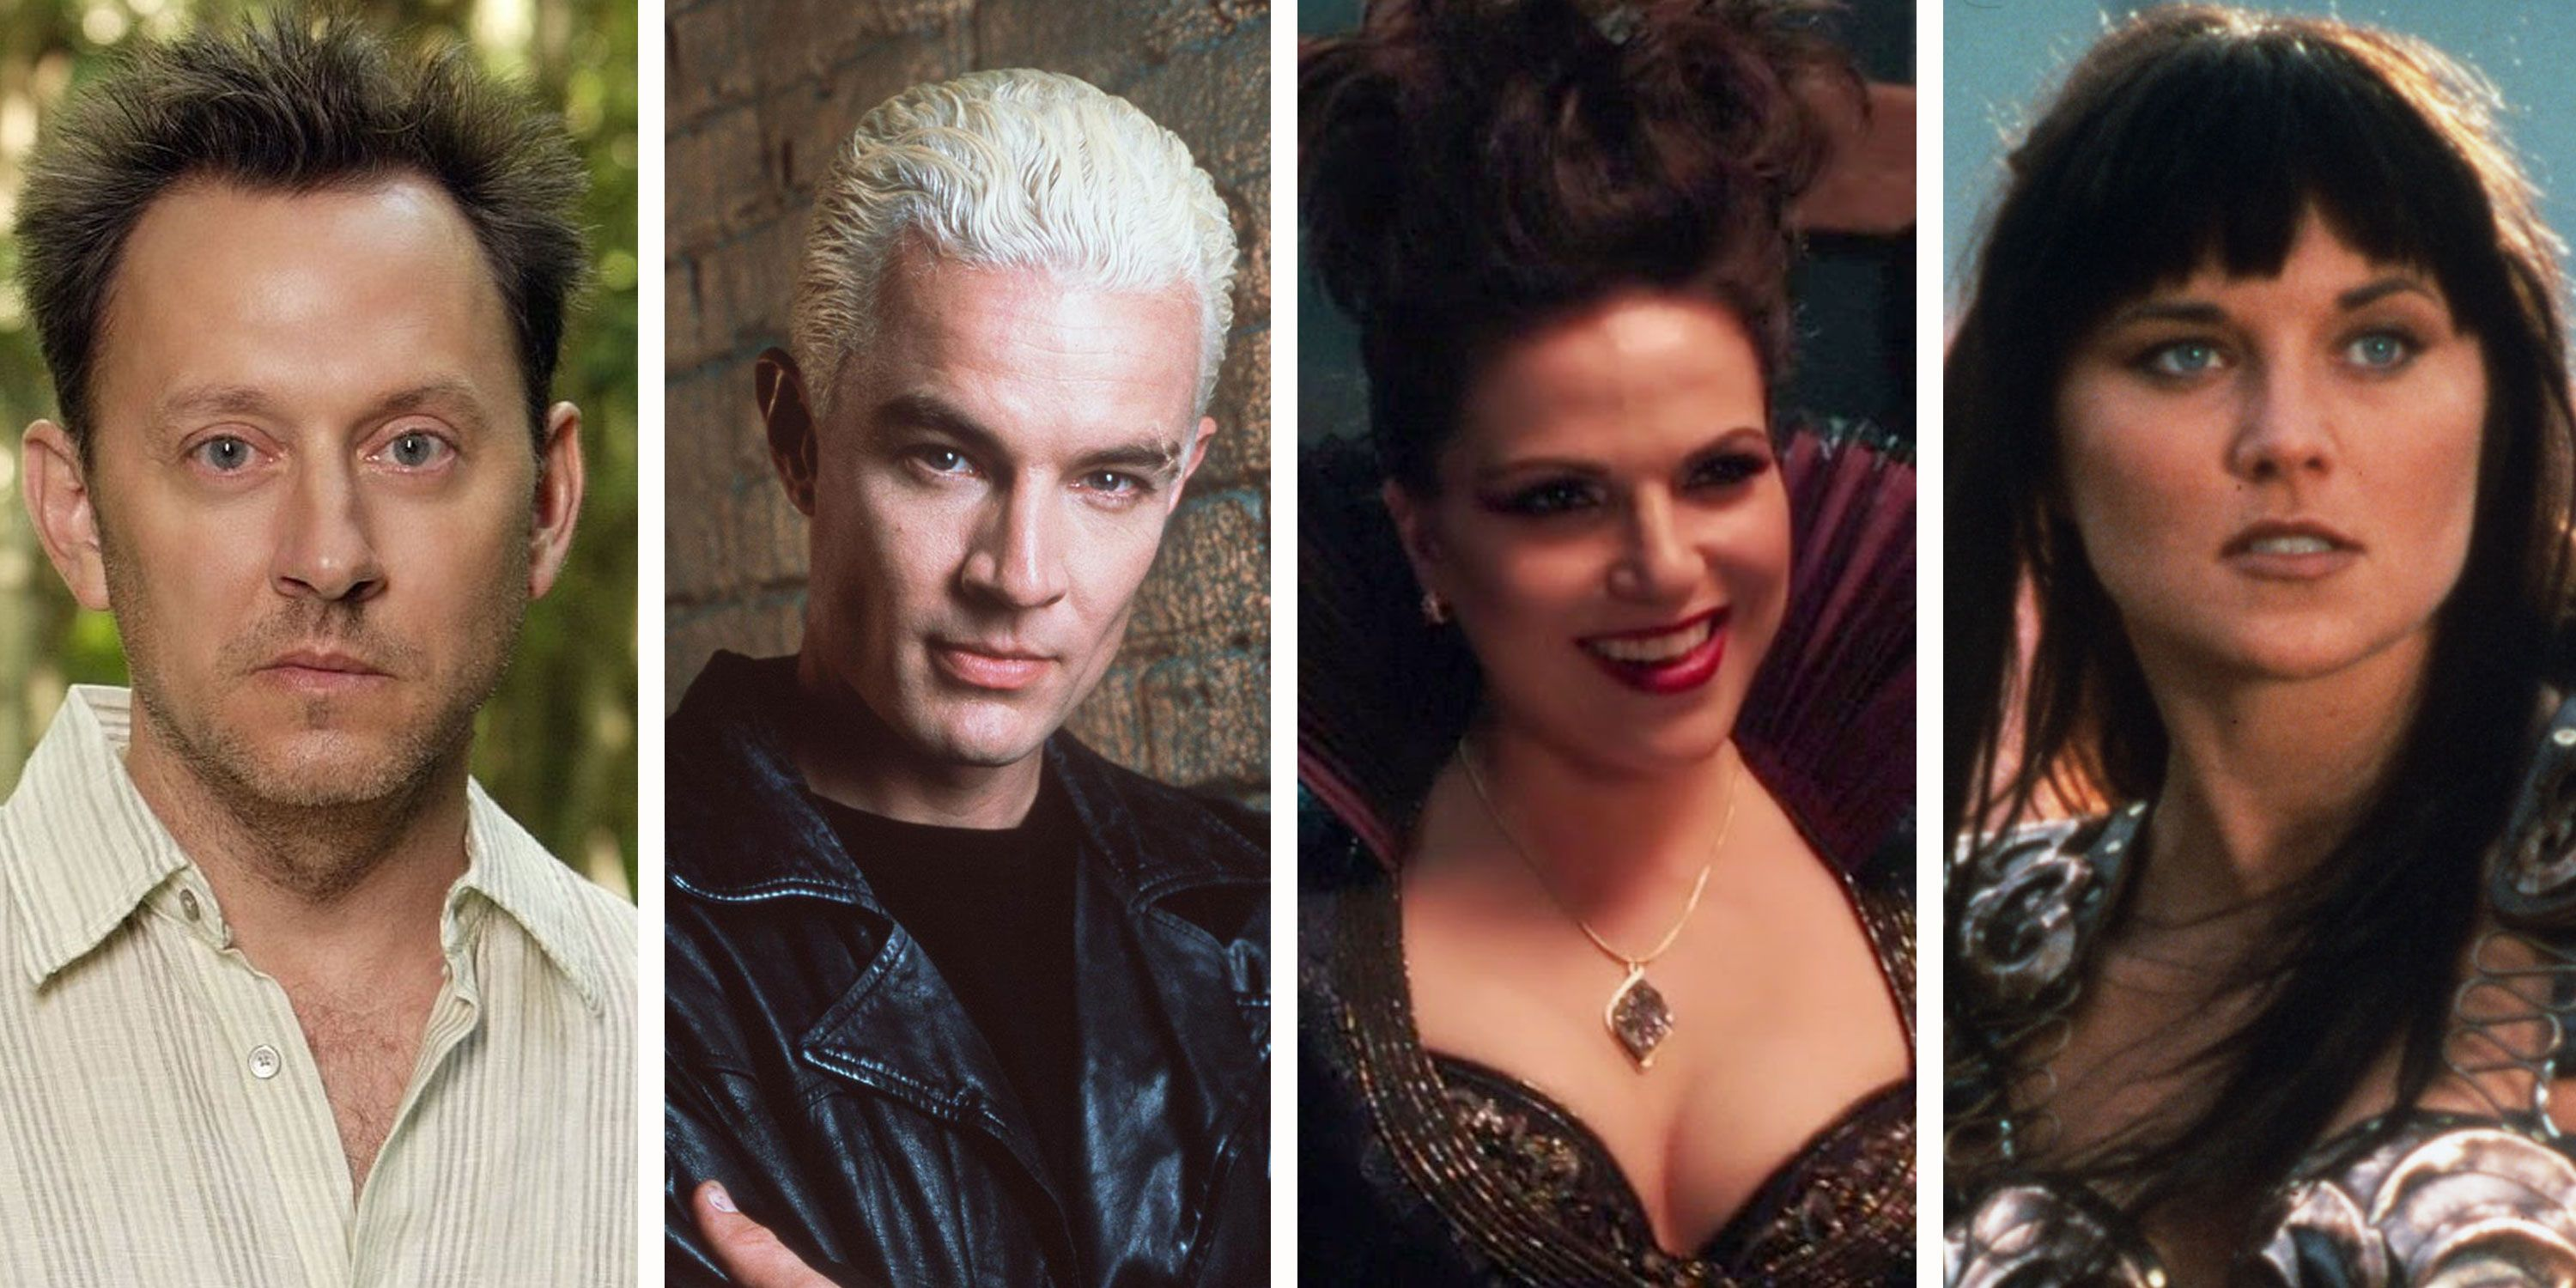 Spike from Buffy, Xena, Ben Linus from Lost and Regina from Once Upon a Time